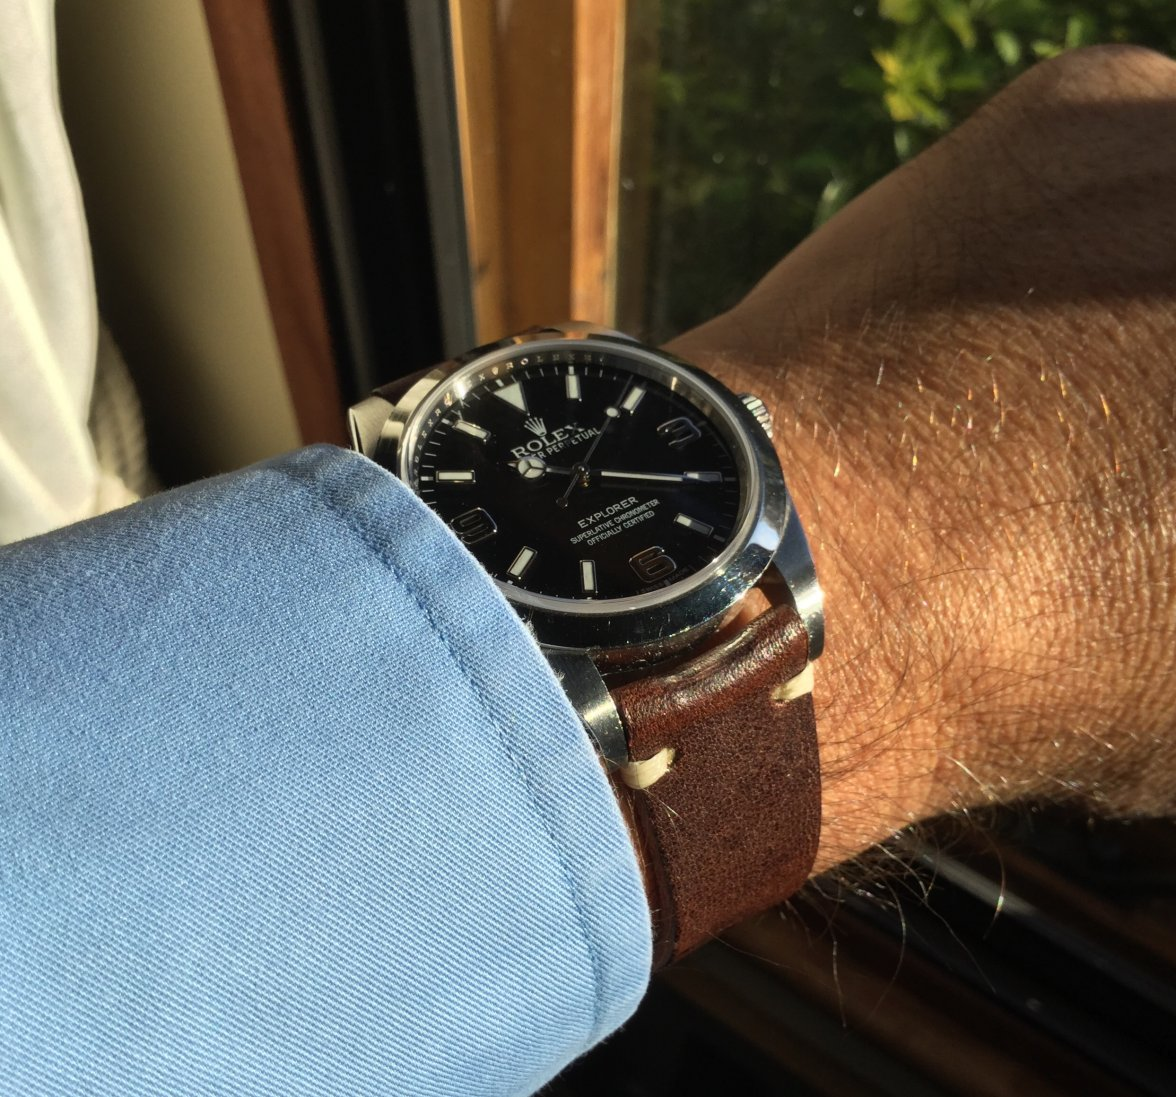 39mm Explorer on a leather strap?